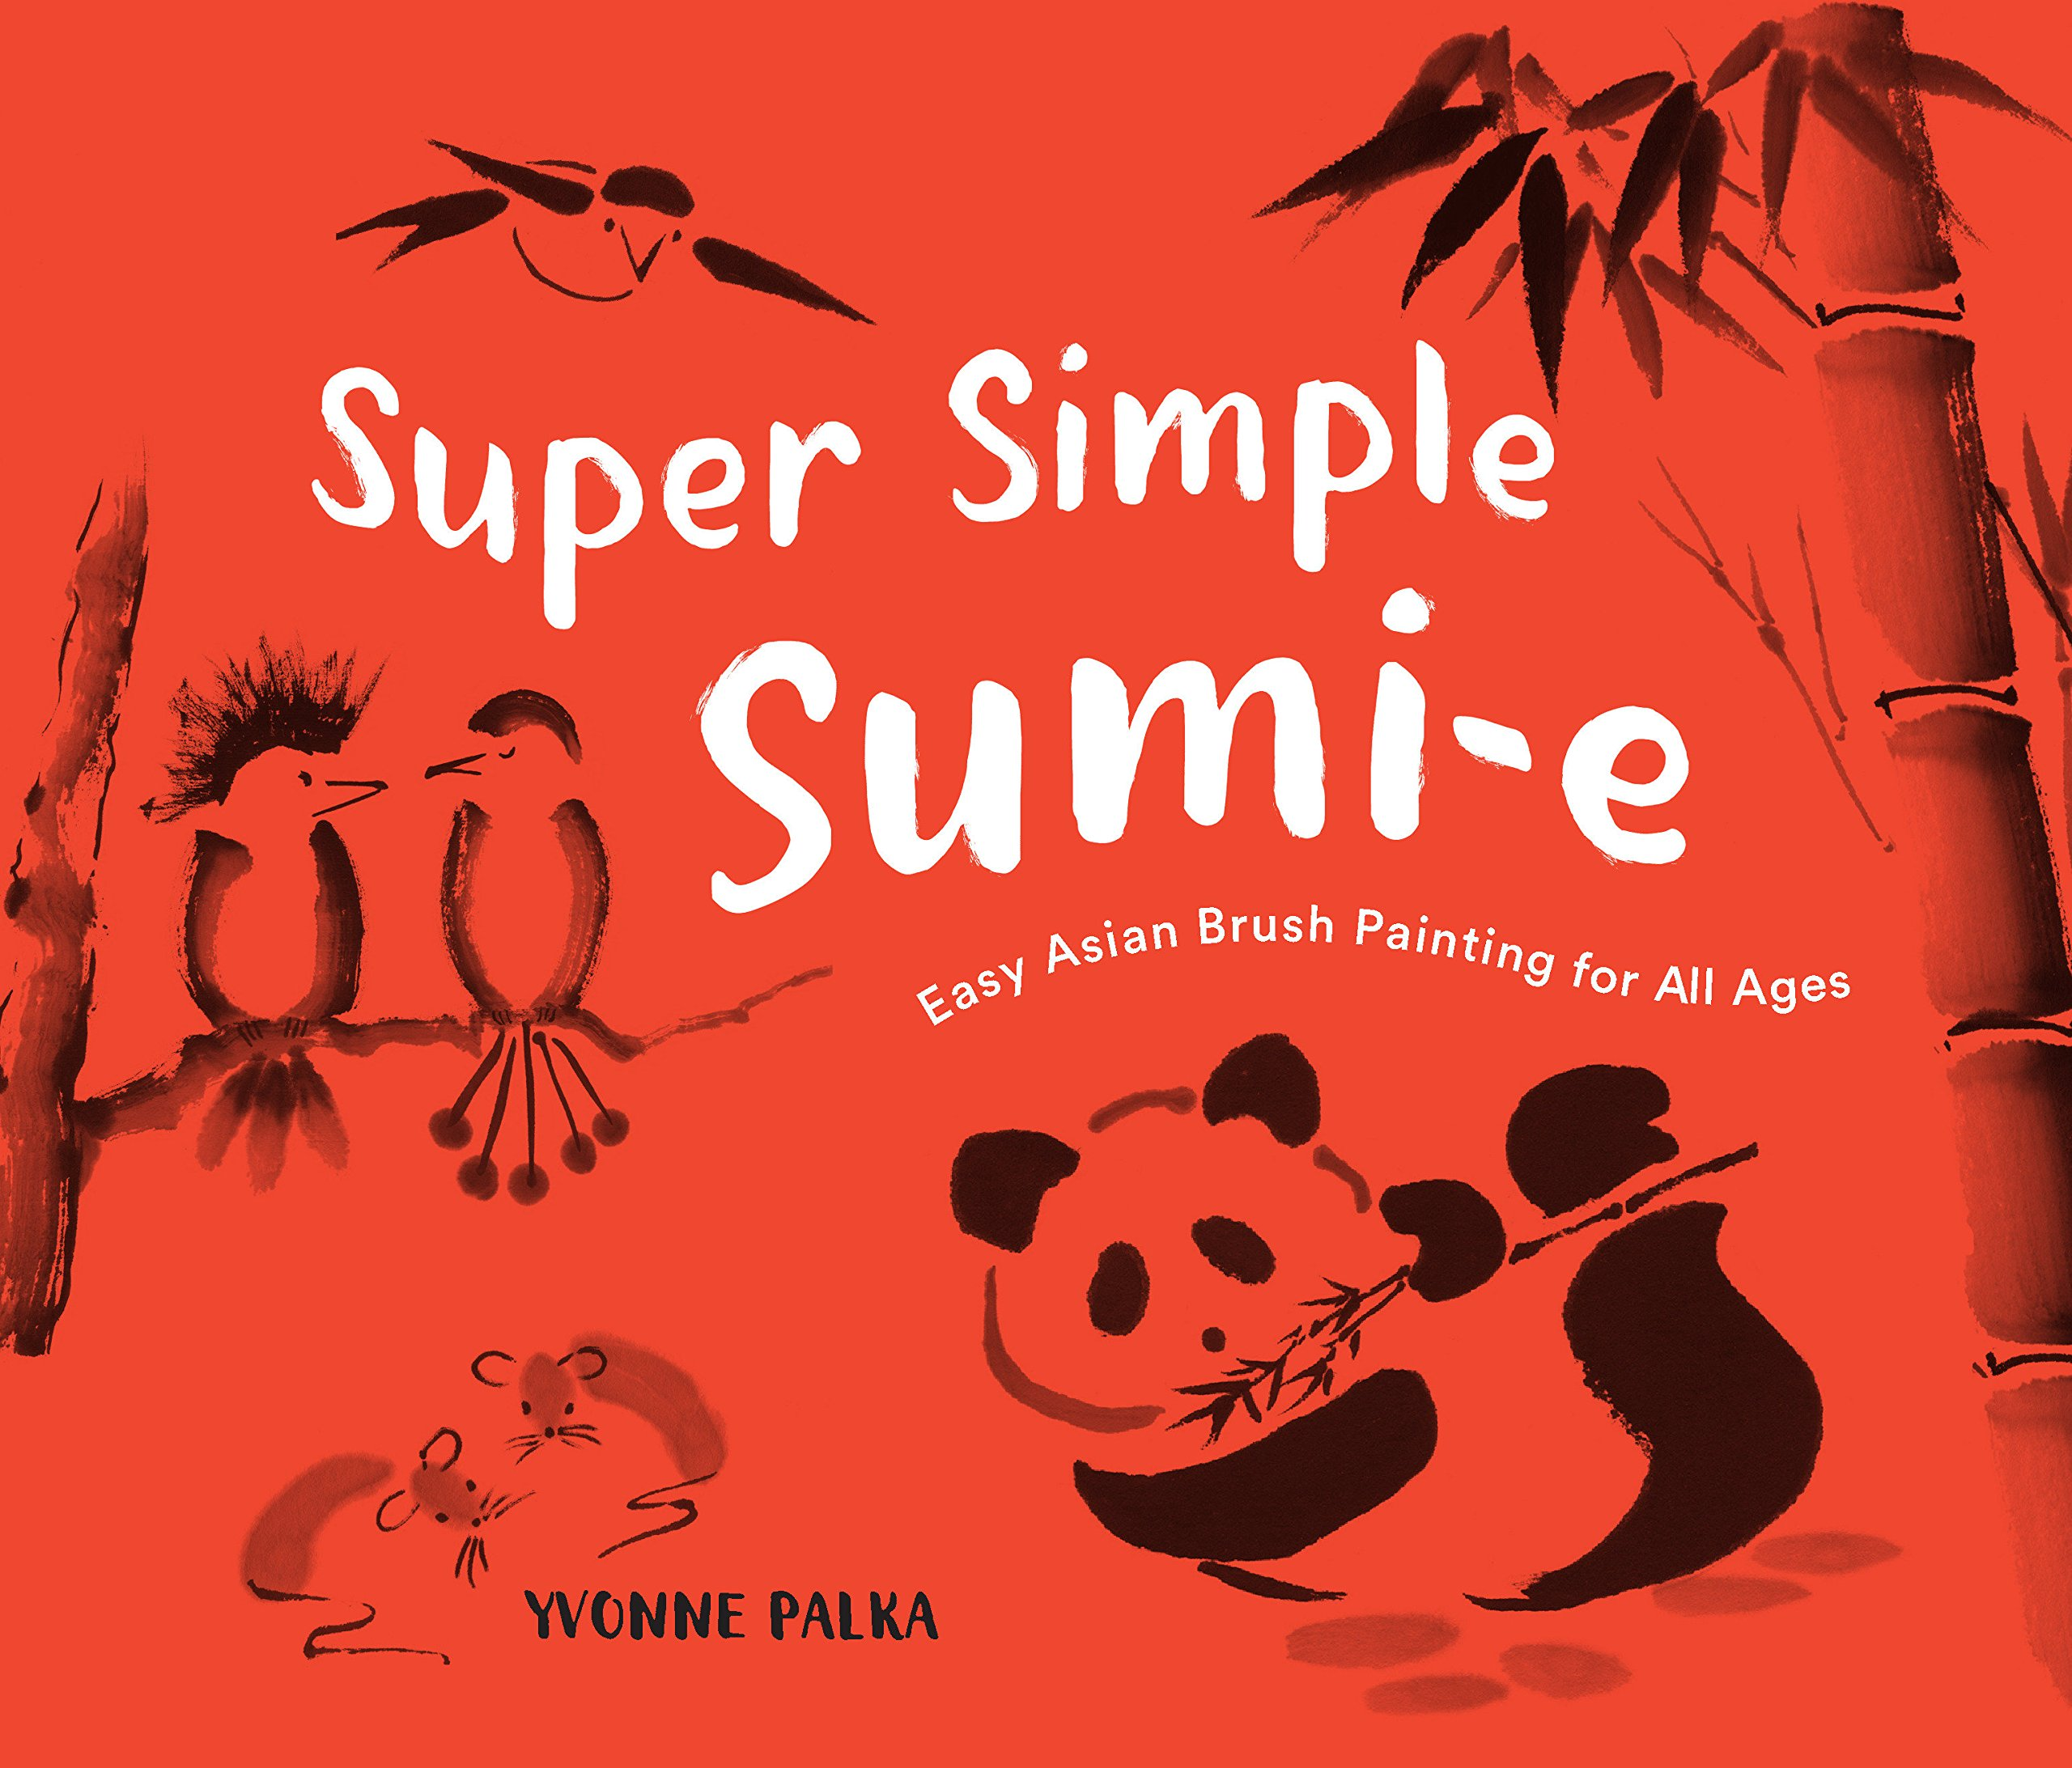 Super Simple Sumi-e: Easy Asian Brush Painting for All Ages: Yvonne Palka:  9781632172044: Amazon.com: Books